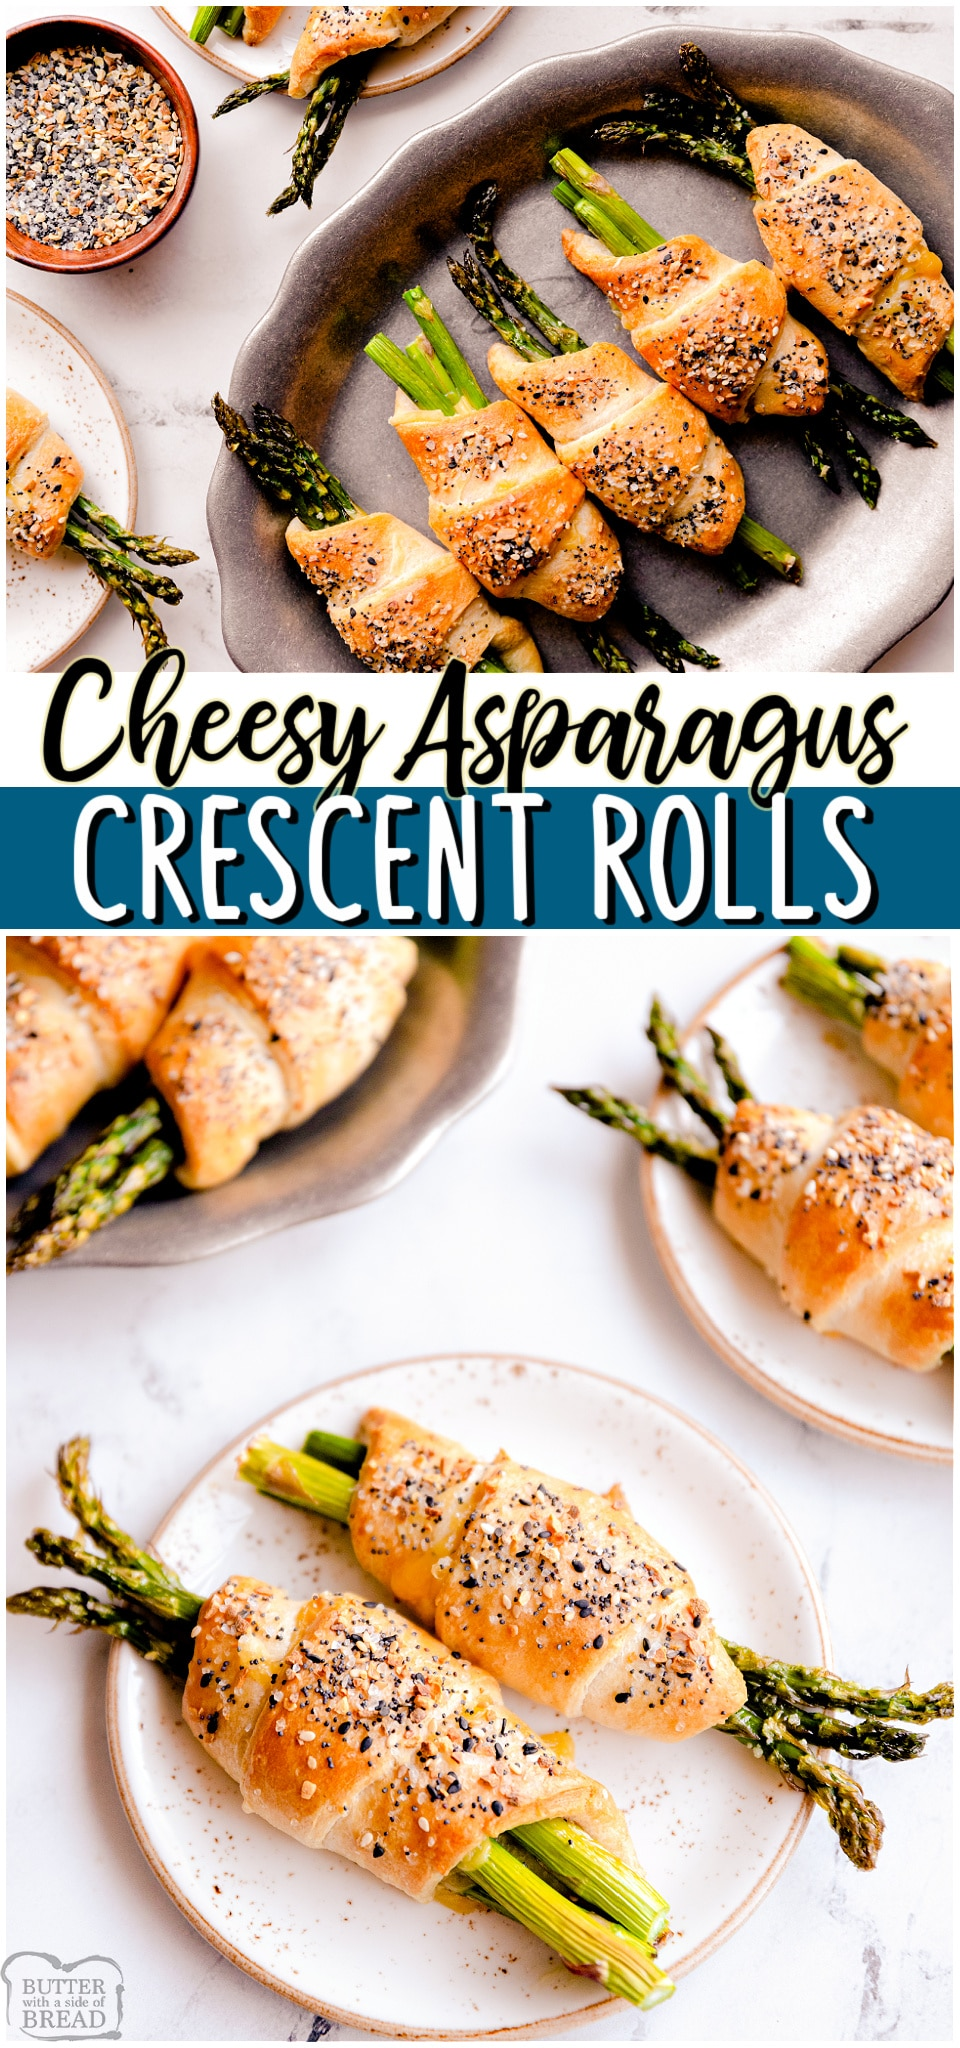 Asparagus crescent rolls are a deliciously simple appetizer made with fresh asparagus, crescent rolls & cheese! Flavorful vegetable dish that's perfect with dinner or at a party! #asparagus #crescentrolls #cheesy #appetizer #easyrecipe from BUTTER WITH A SIDE OF BREAD